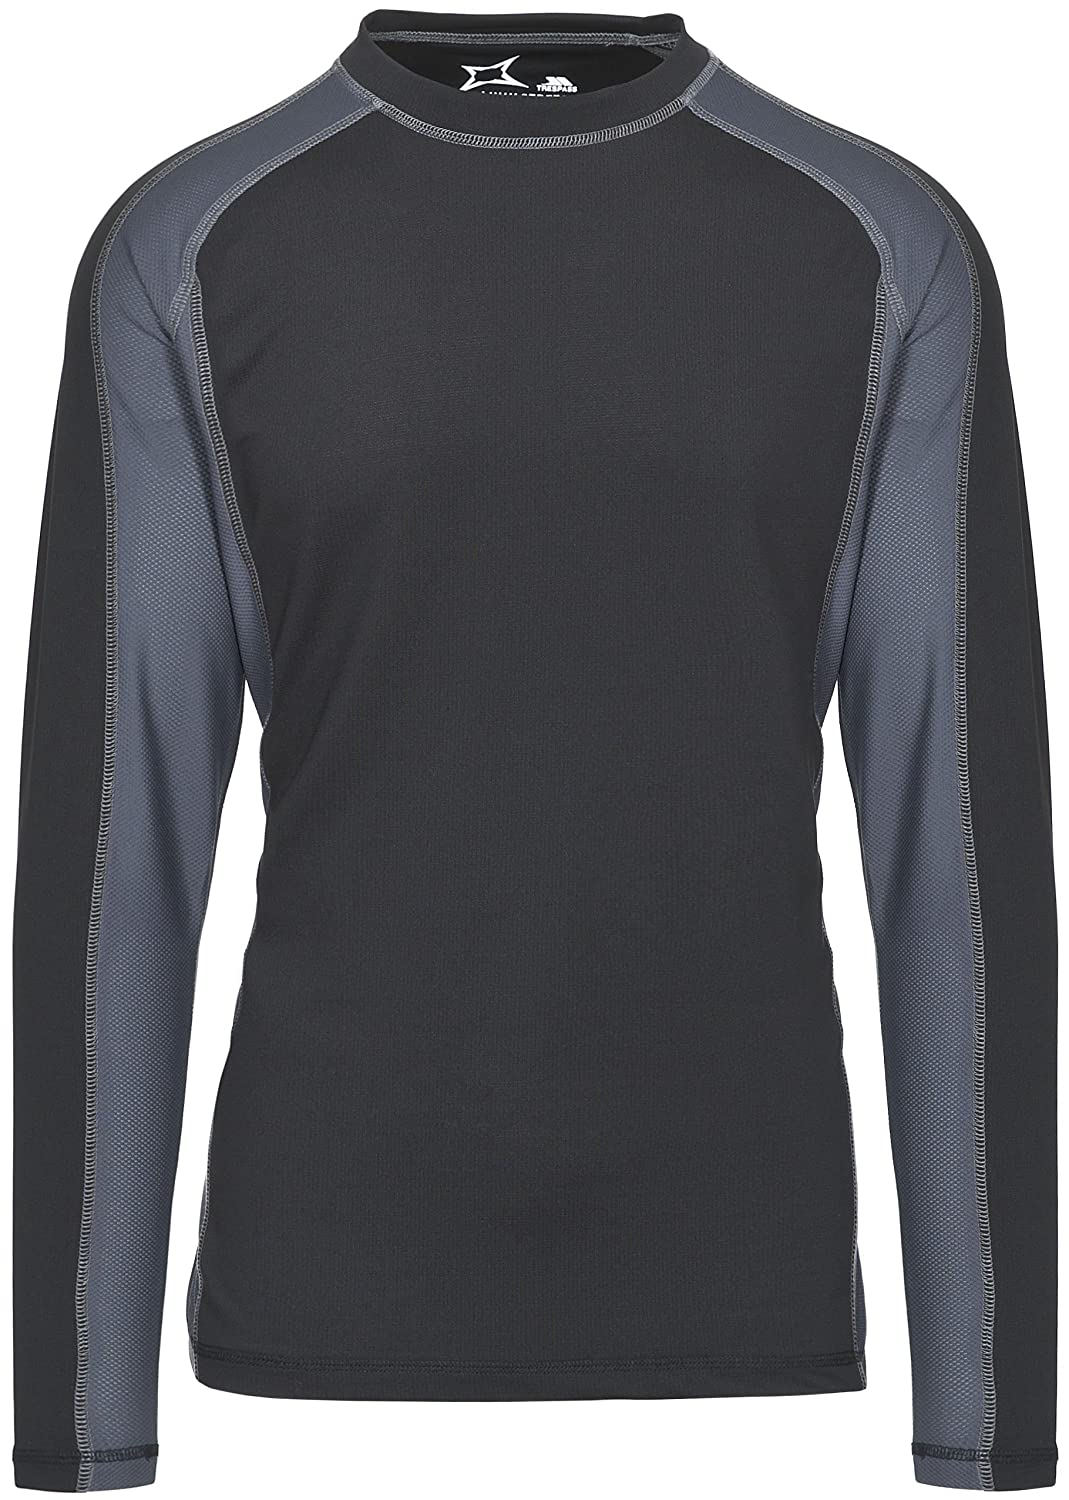 Trespass da Uomo TP75 Esplorare Baselayer Top